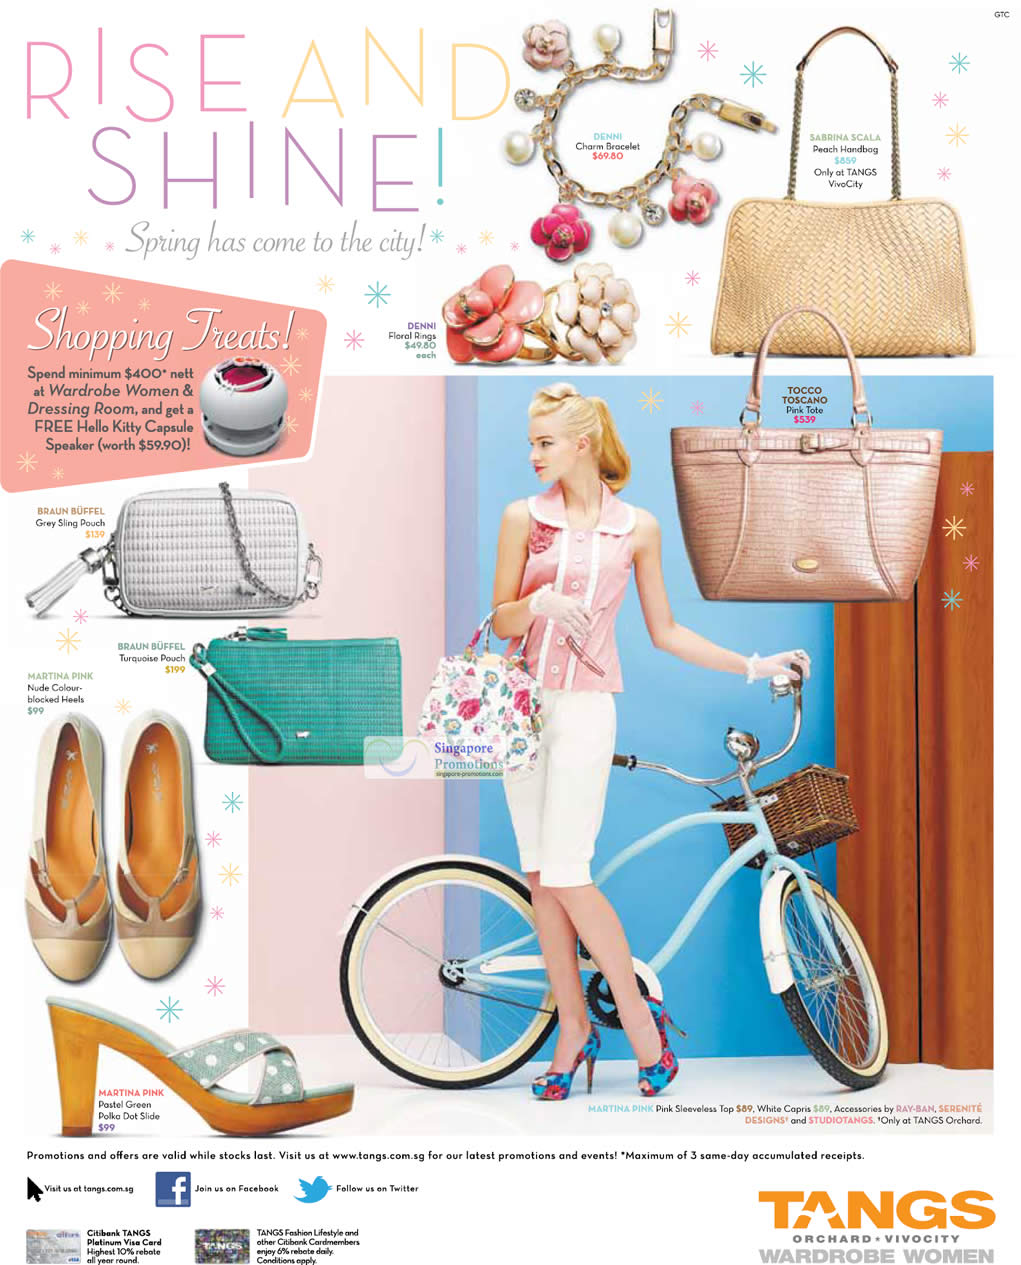 DENNI Floral Rings, BRAUN BUFFEL Grey Sling Pouch, BRAUN BUFFEL Turquoise Pouch, MARTINA PINK Heels, MARTINA PINK Pastel Green Polka Dot Slide, DENNI Charm Bracelet, SABRINA SCALA Peach Handbag, TOCCO TOSCANO Pink Tote, MARTINA PINK Pink Sleeveless Top, MARTINA PINK White Capris